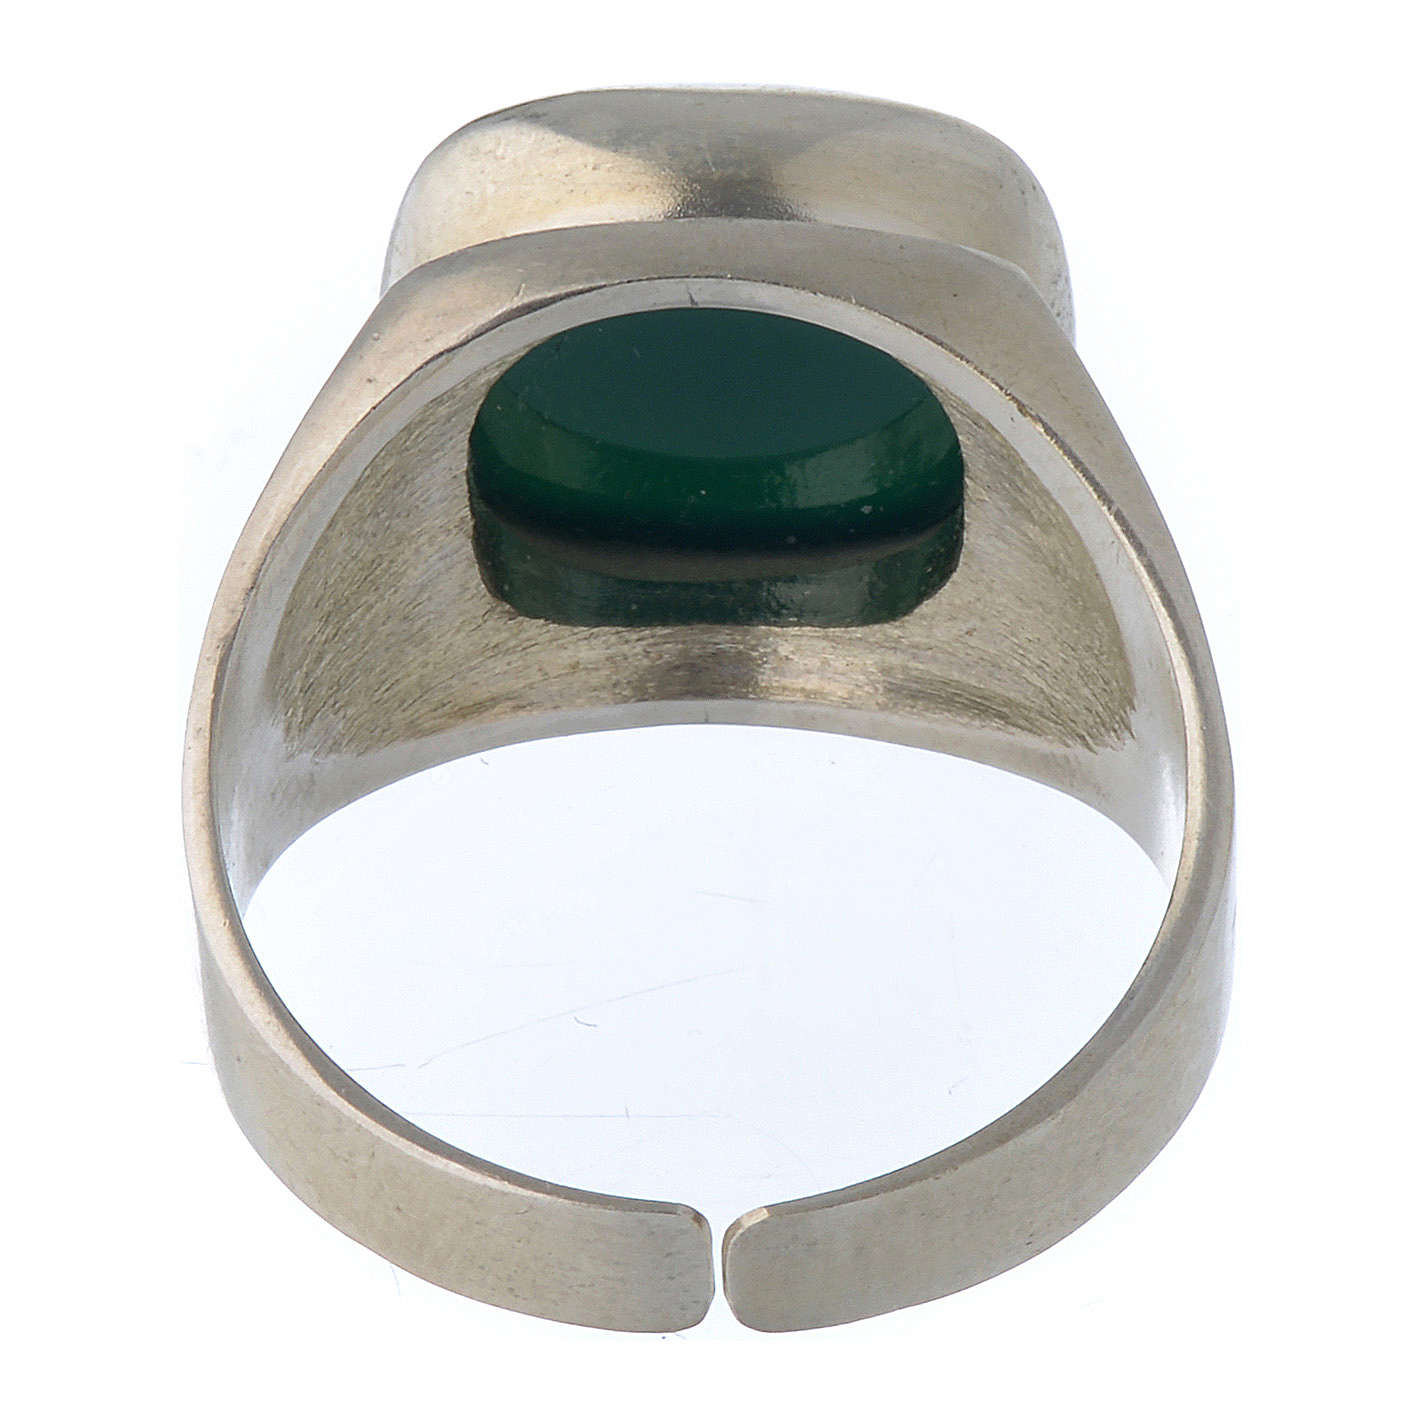 Bishop's Ring Silver 800 with green agate stone 3